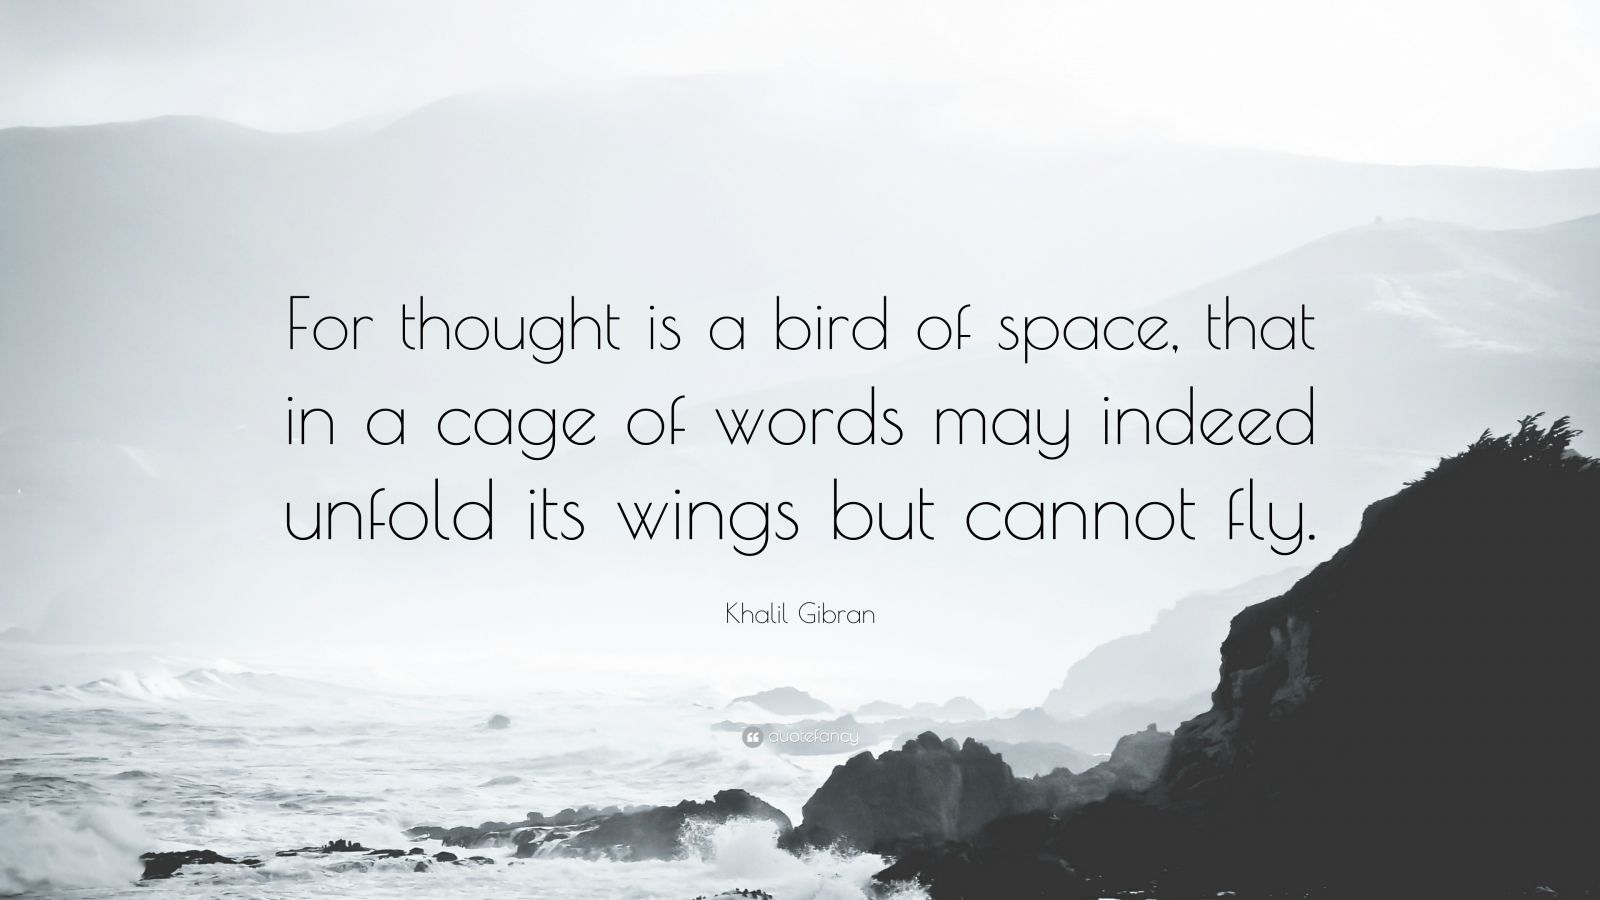 """Khalil Gibran Quote: """"For thought is a bird of space, that in a cage of words may indeed unfold its wings but cannot fly."""""""